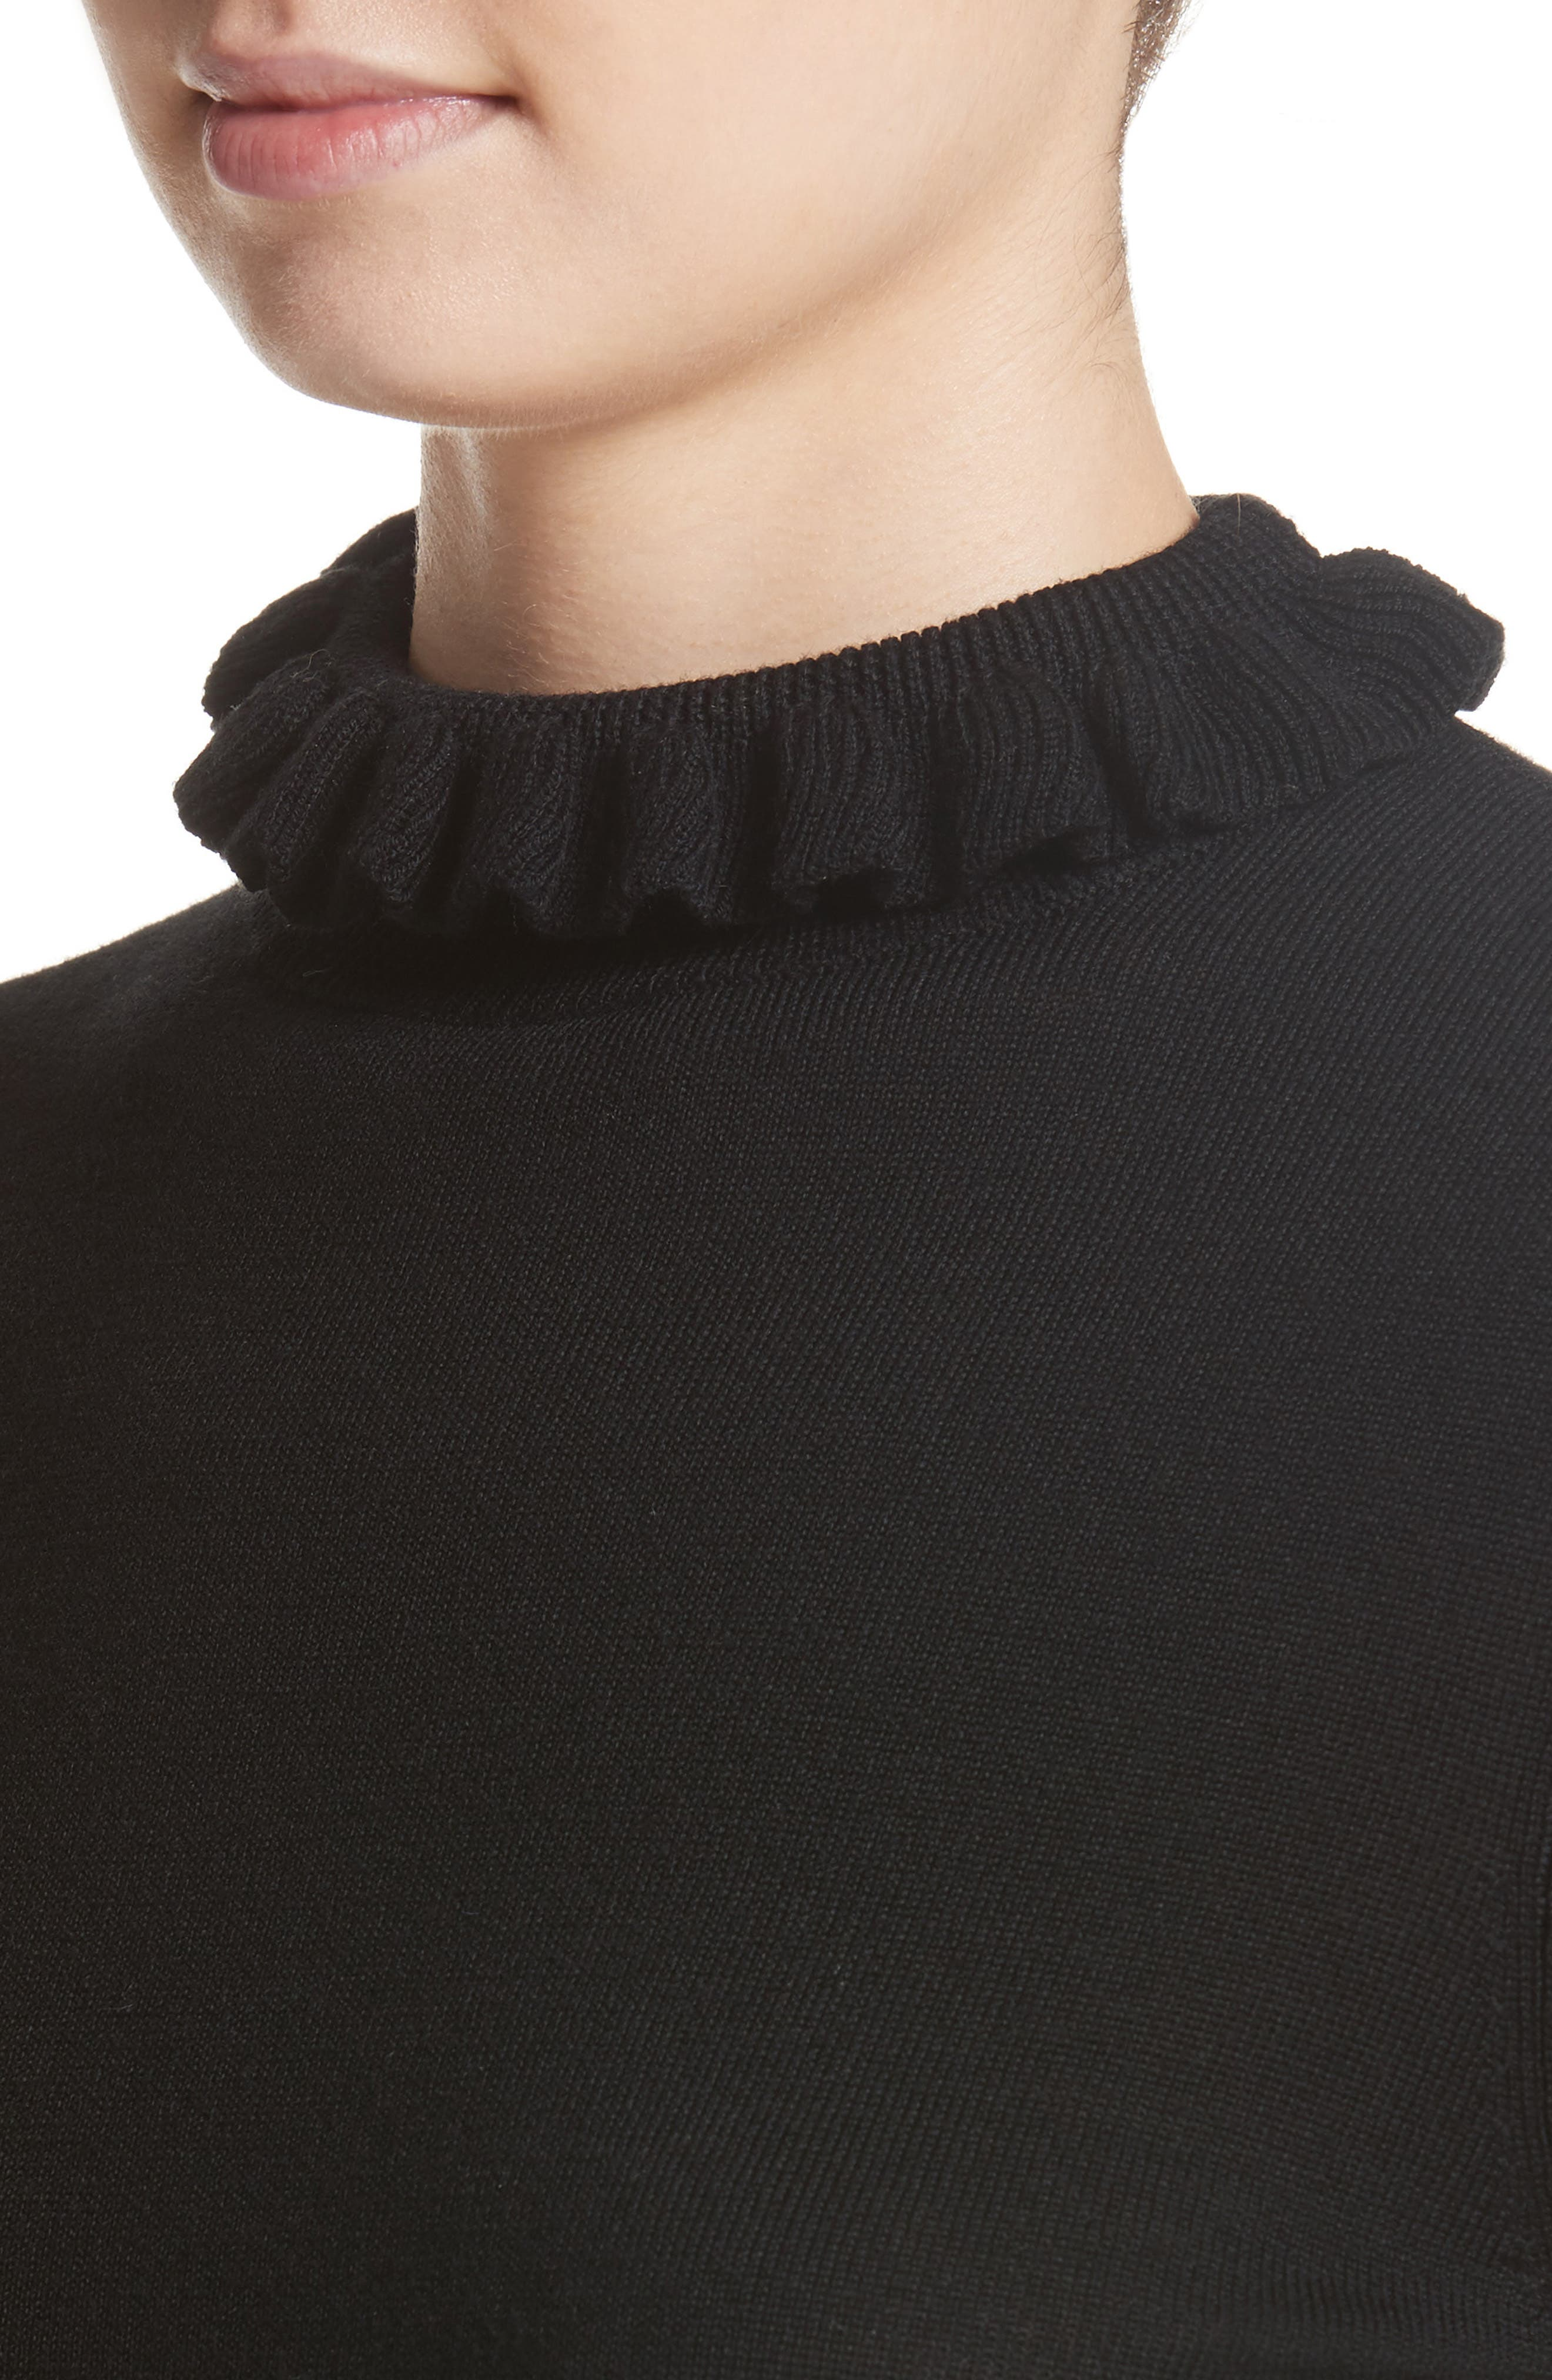 Robin Frill Wool Sweater,                             Alternate thumbnail 4, color,